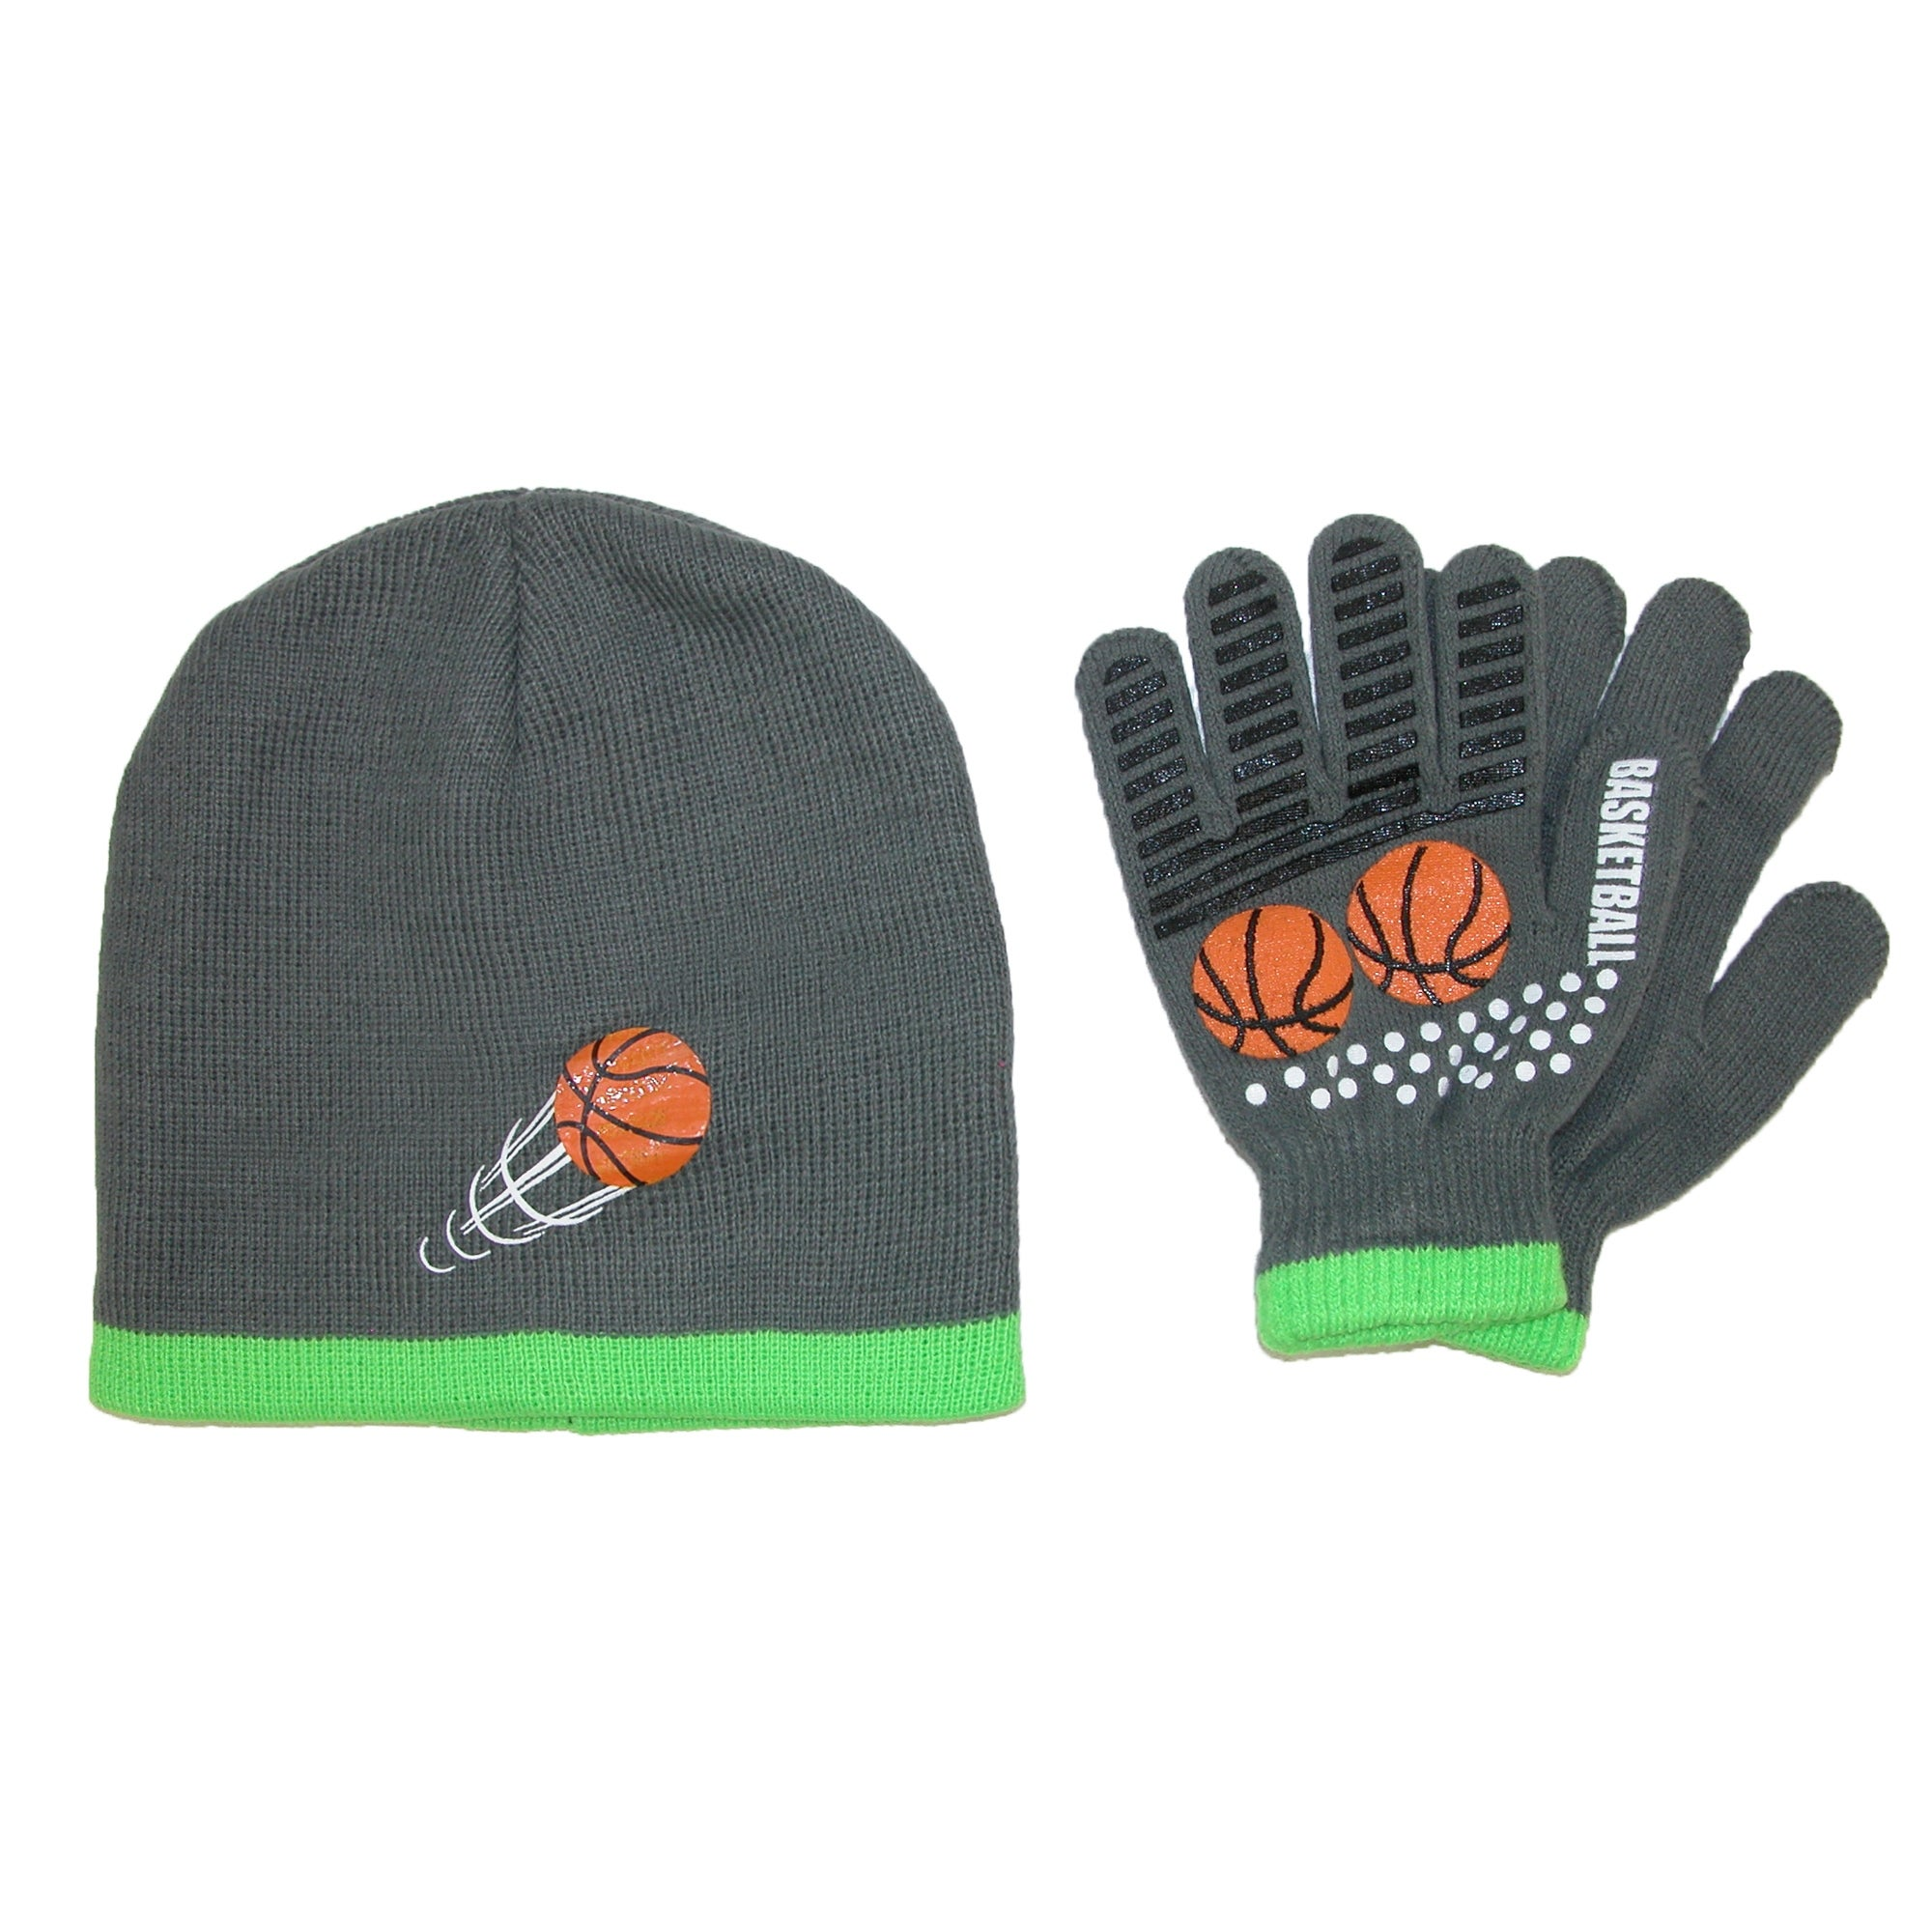 6e82b0e244ad5 Shop Grand Sierra Kids  4-12 Sports Beanie Hat and Glove Winter Set - Free  Shipping On Orders Over  45 - Overstock - 14281870